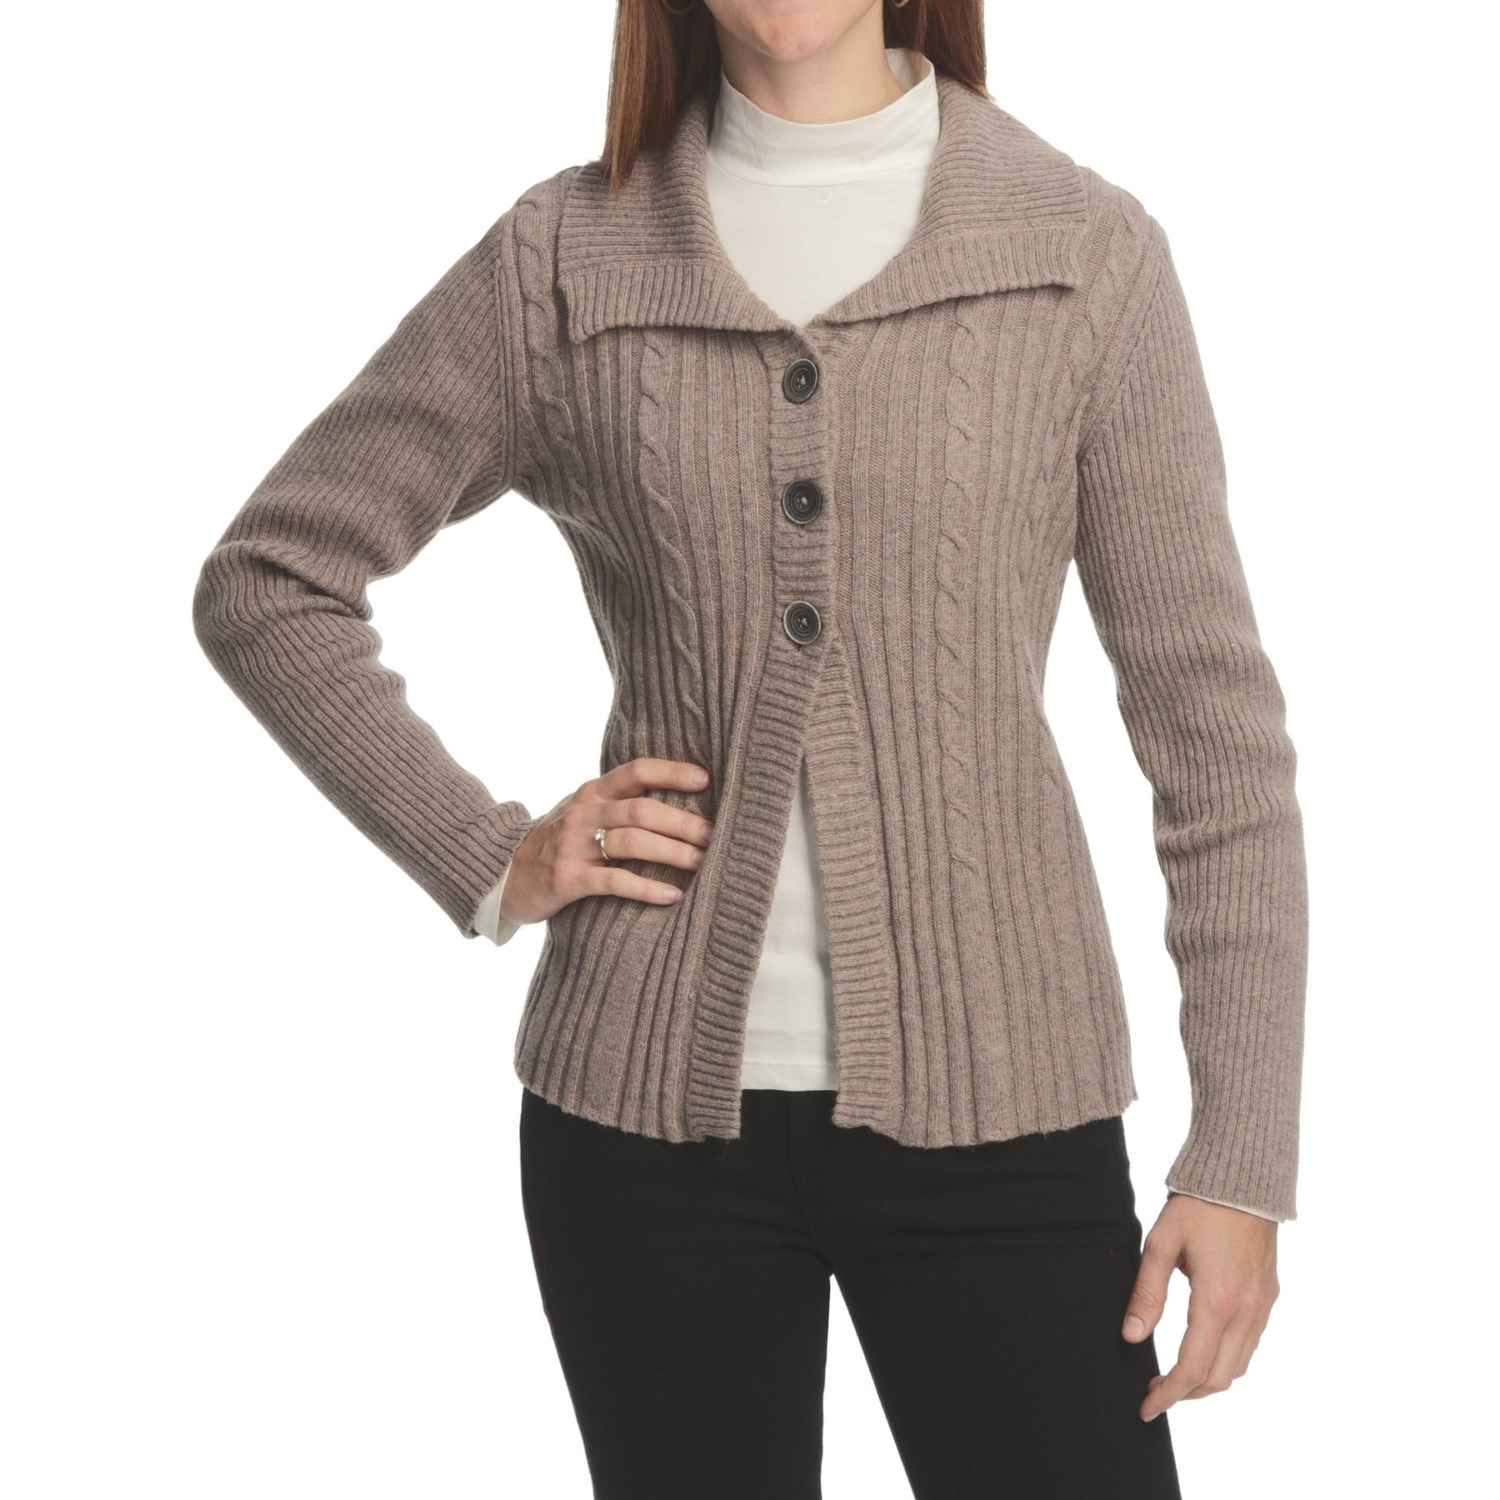 Pin sweaters women winter images sweaters women winter photos on